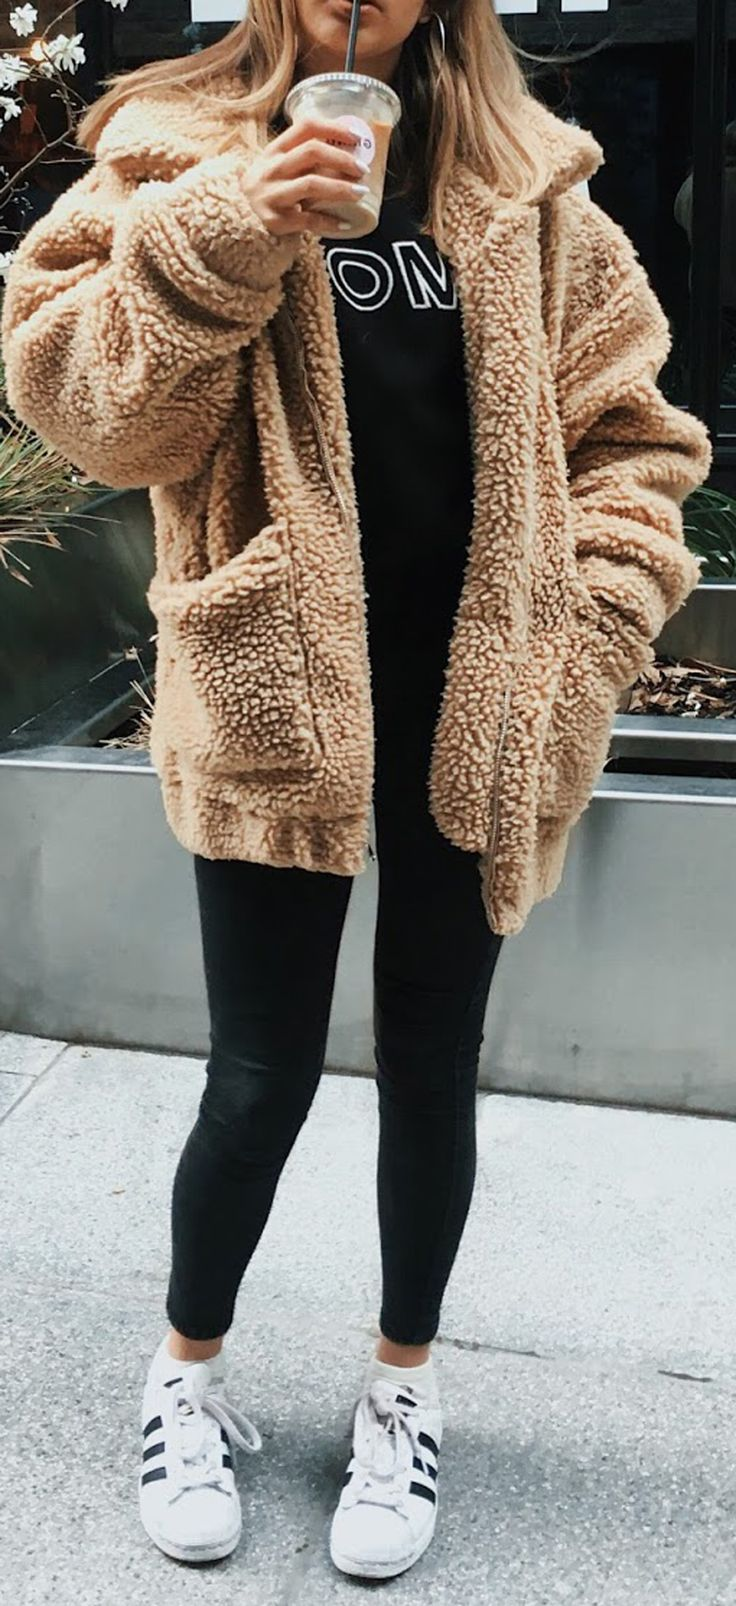 Aurora Popular Oversized Soft Comfy Sherpa Teddy Jacket Pixie Coat Aurora Popular Oversized Soft Comfy Sherpa Teddy Jacket Pixie Coat Casual Outfit casual outfits for girl